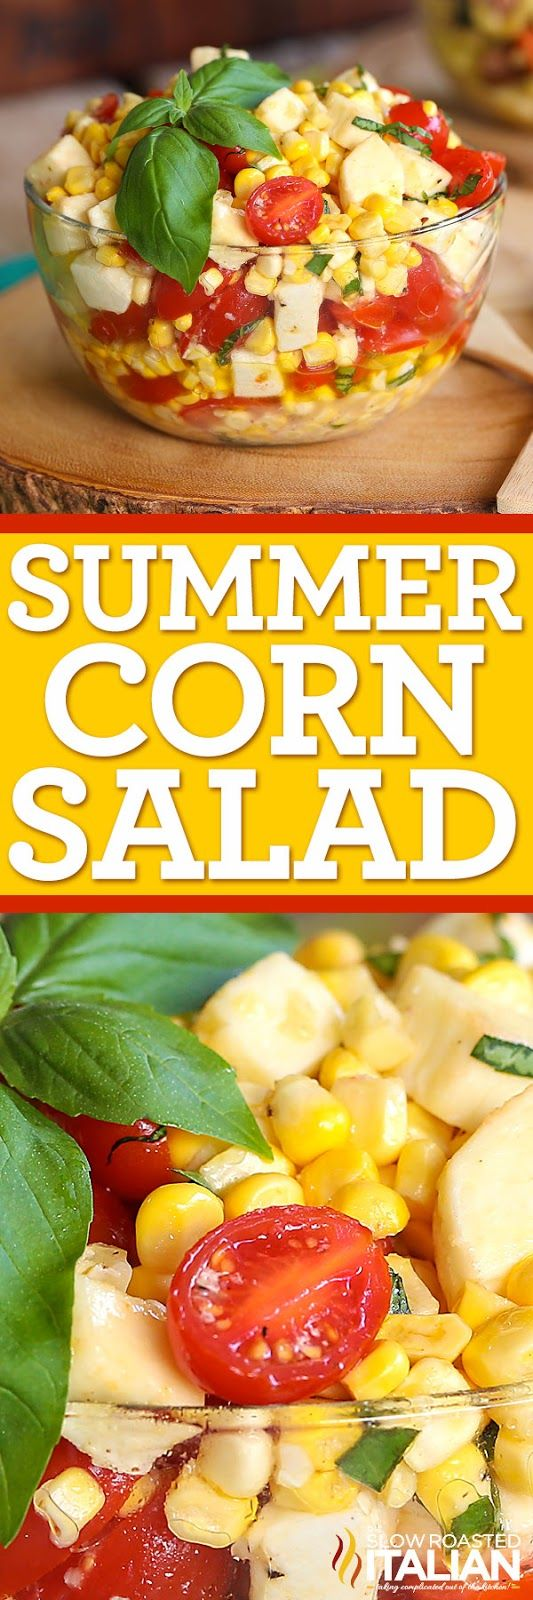 Summer Corn Salad is a bright refreshing taste of summer.  Garden fresh corn and tomatoes come together with fresh mozzarella, herbs and a glorious dressing that really gives it an even lighter fresher taste.  This simple recipe is the perfect summer side!